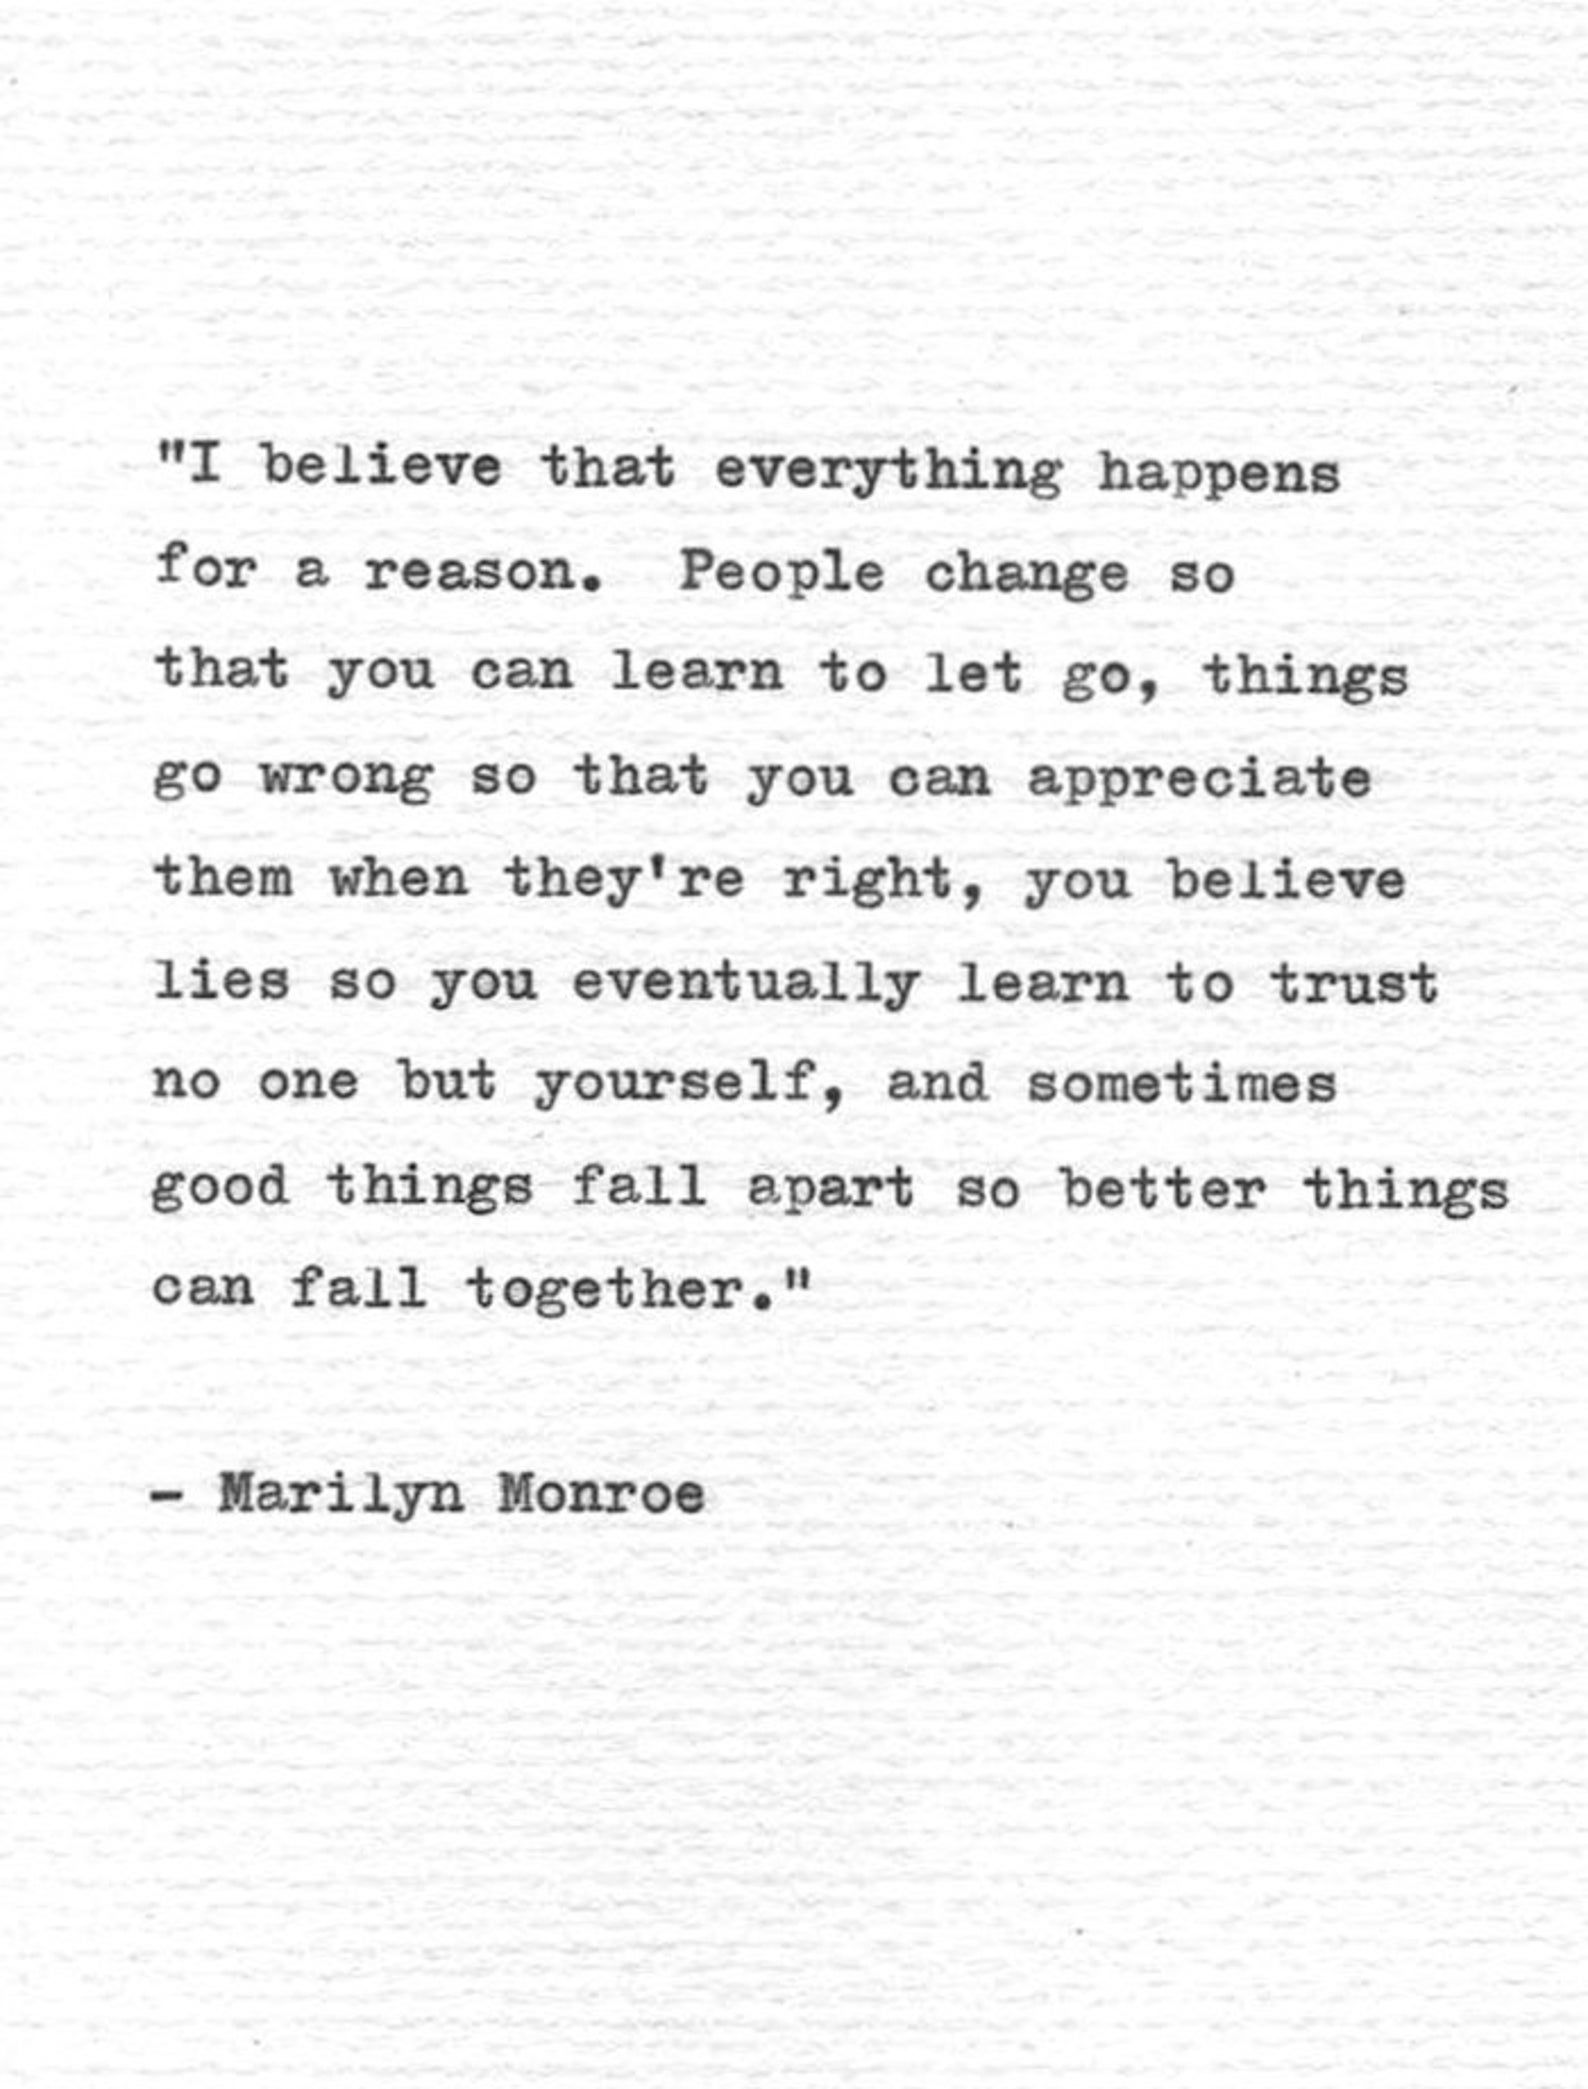 Marilyn Monroe Typewriter Quote